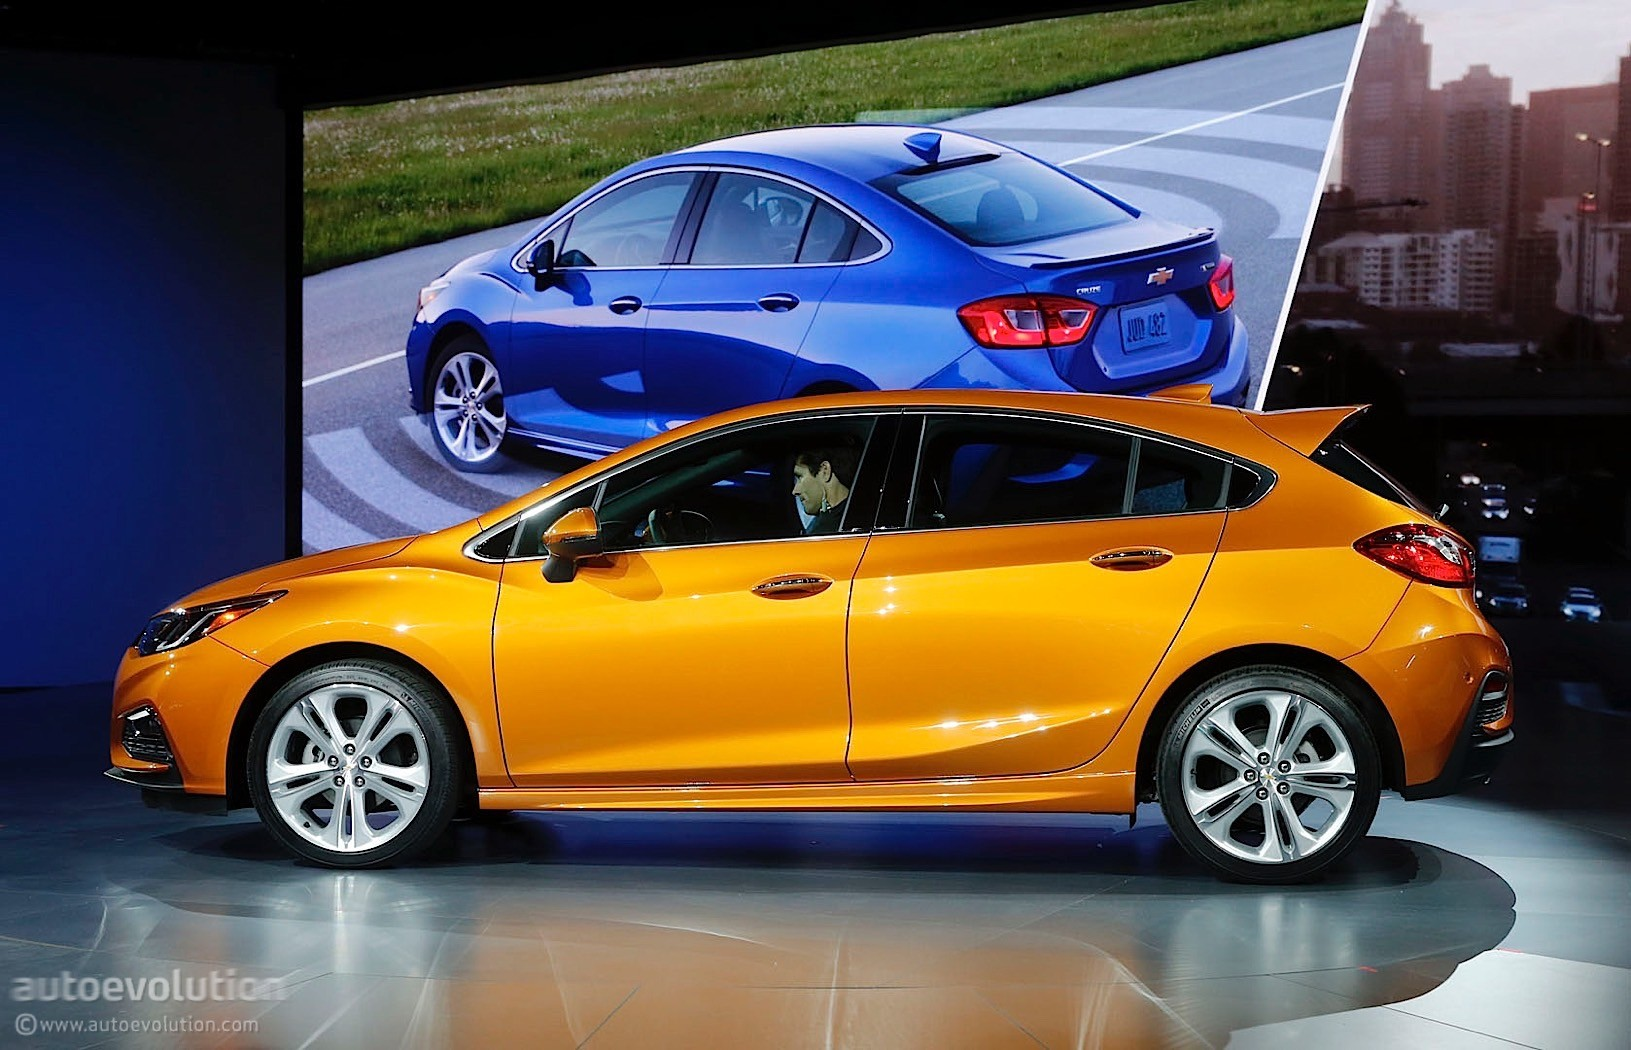 2018 Chevrolet Cruze Diesel Hatchback Price Set From